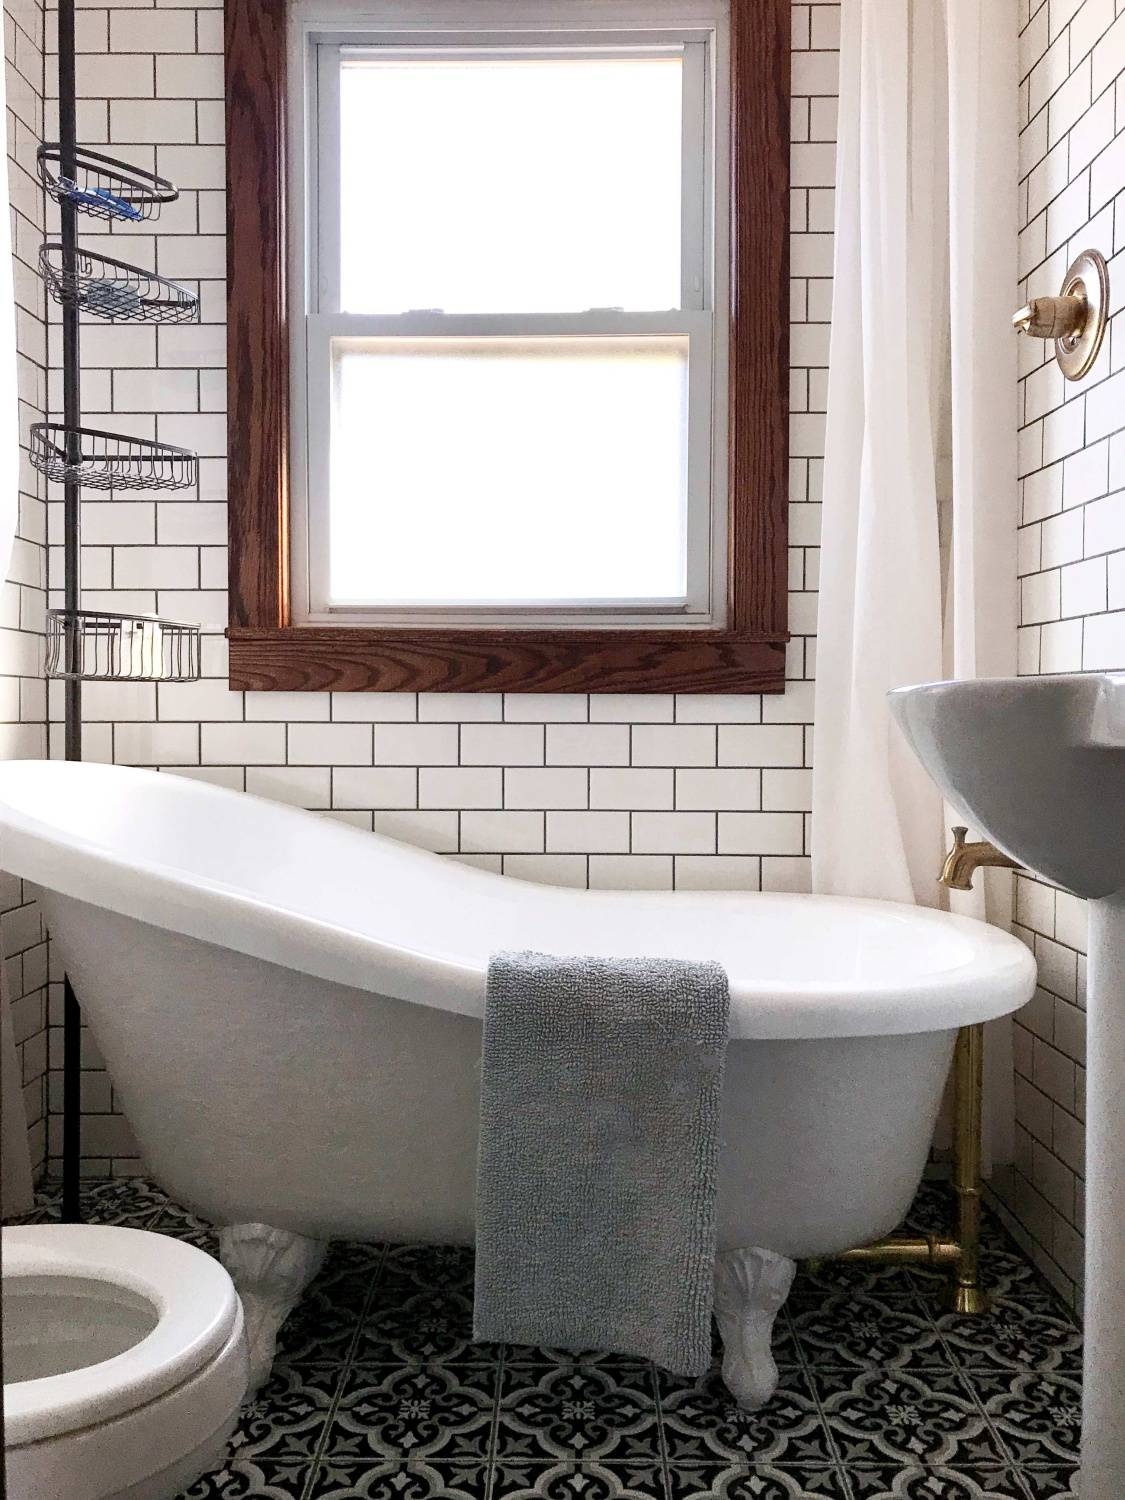 Finished bathroom renovation in a 1920s lakehouse cottage